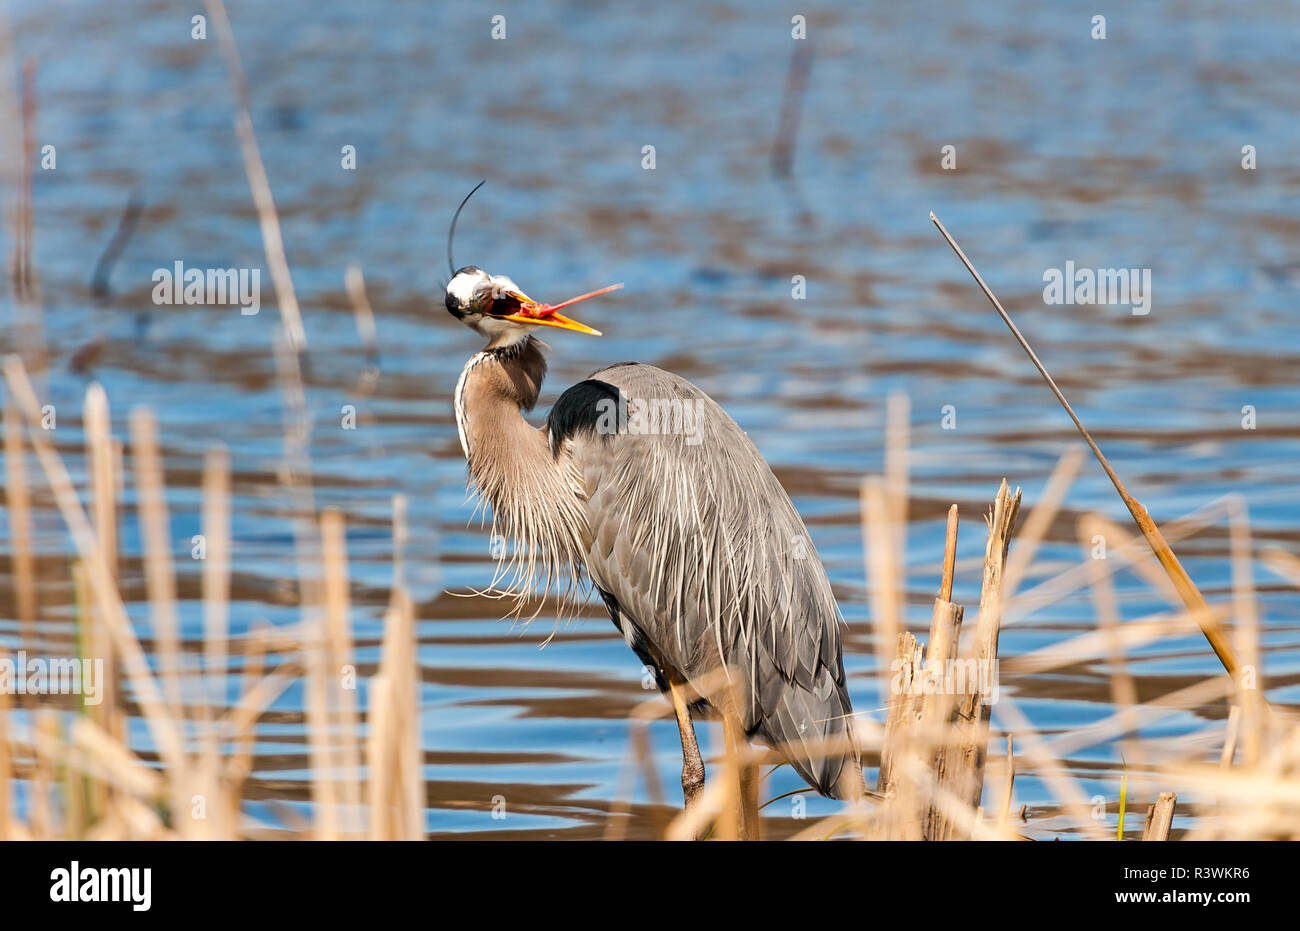 A Great Blue Heron sticking his tongue out, mugging for the camera. - Stock Image